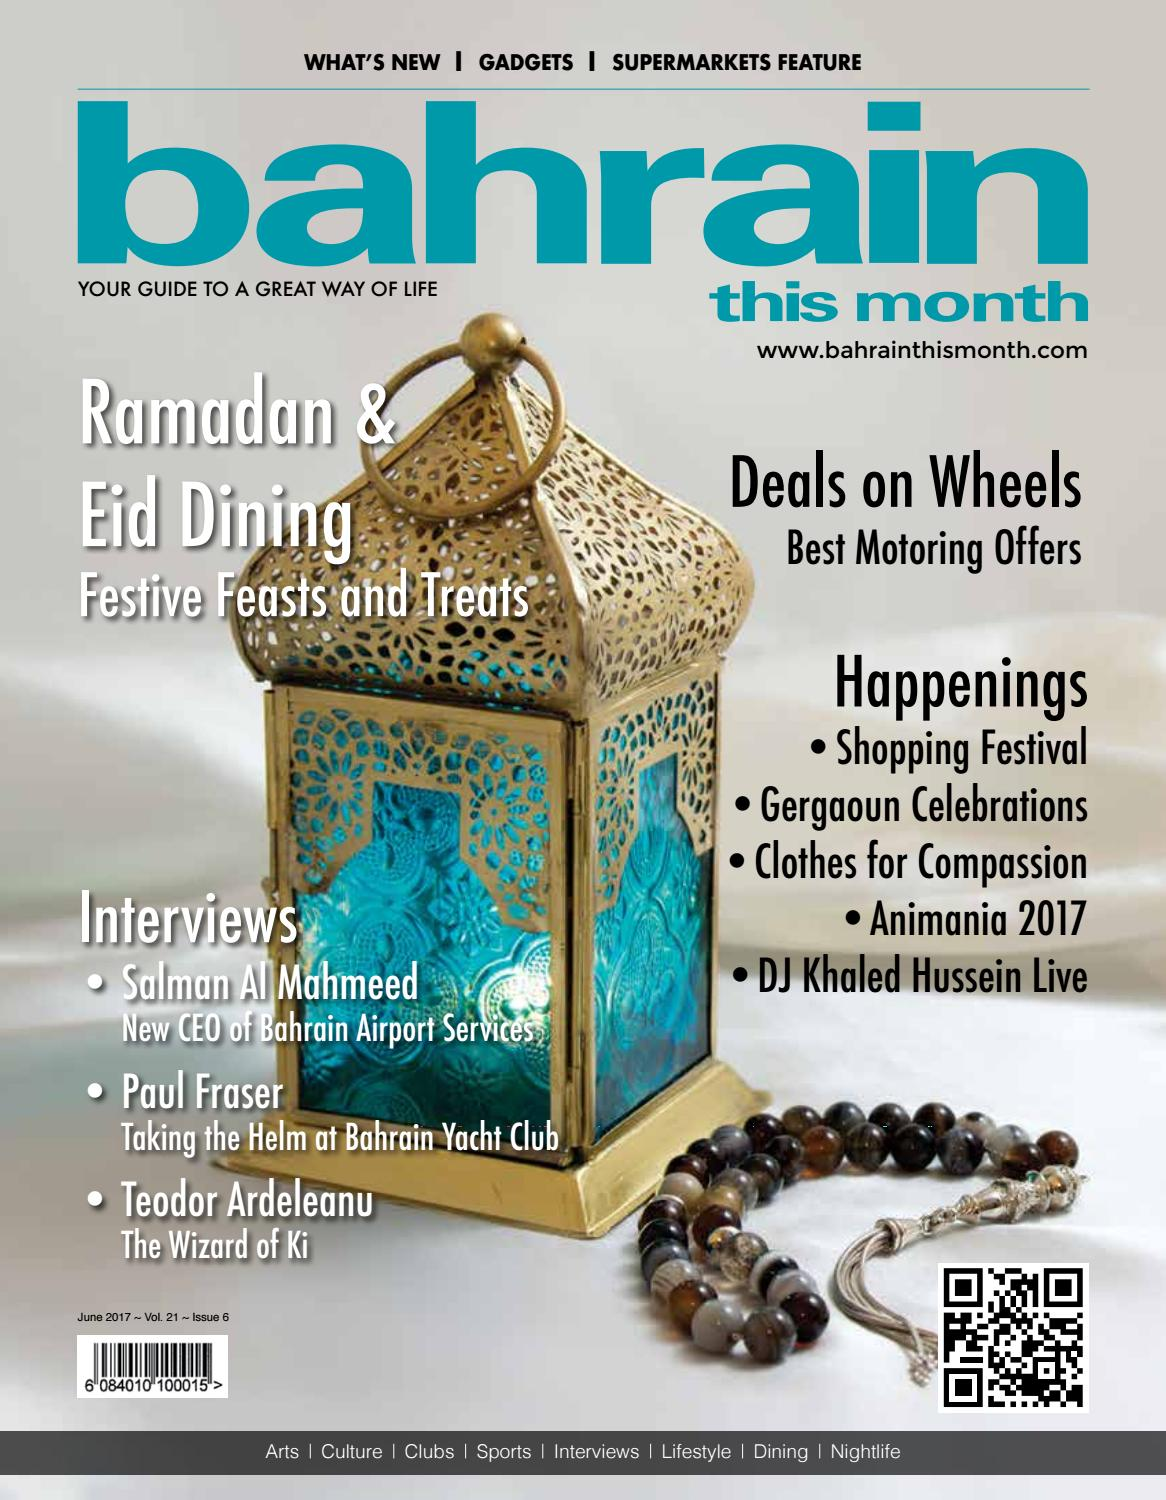 Bahrain This Month - June 2017 by Red House Marketing - issuu